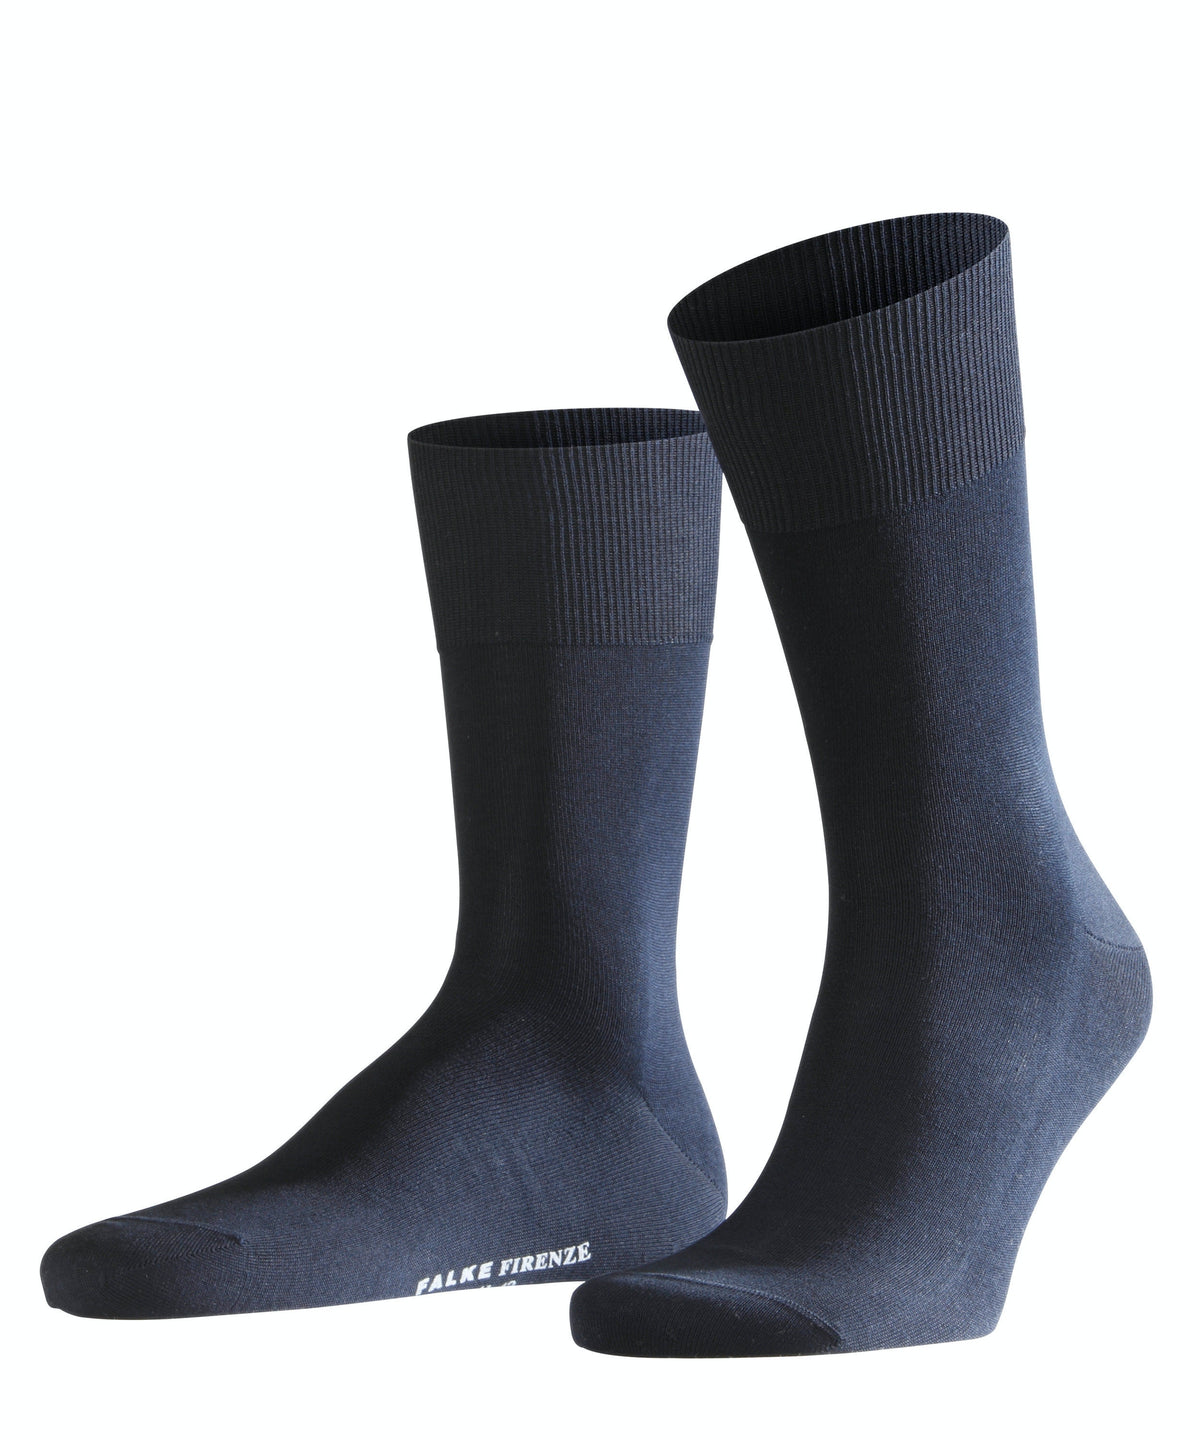 FALKE Firenze Men Socks